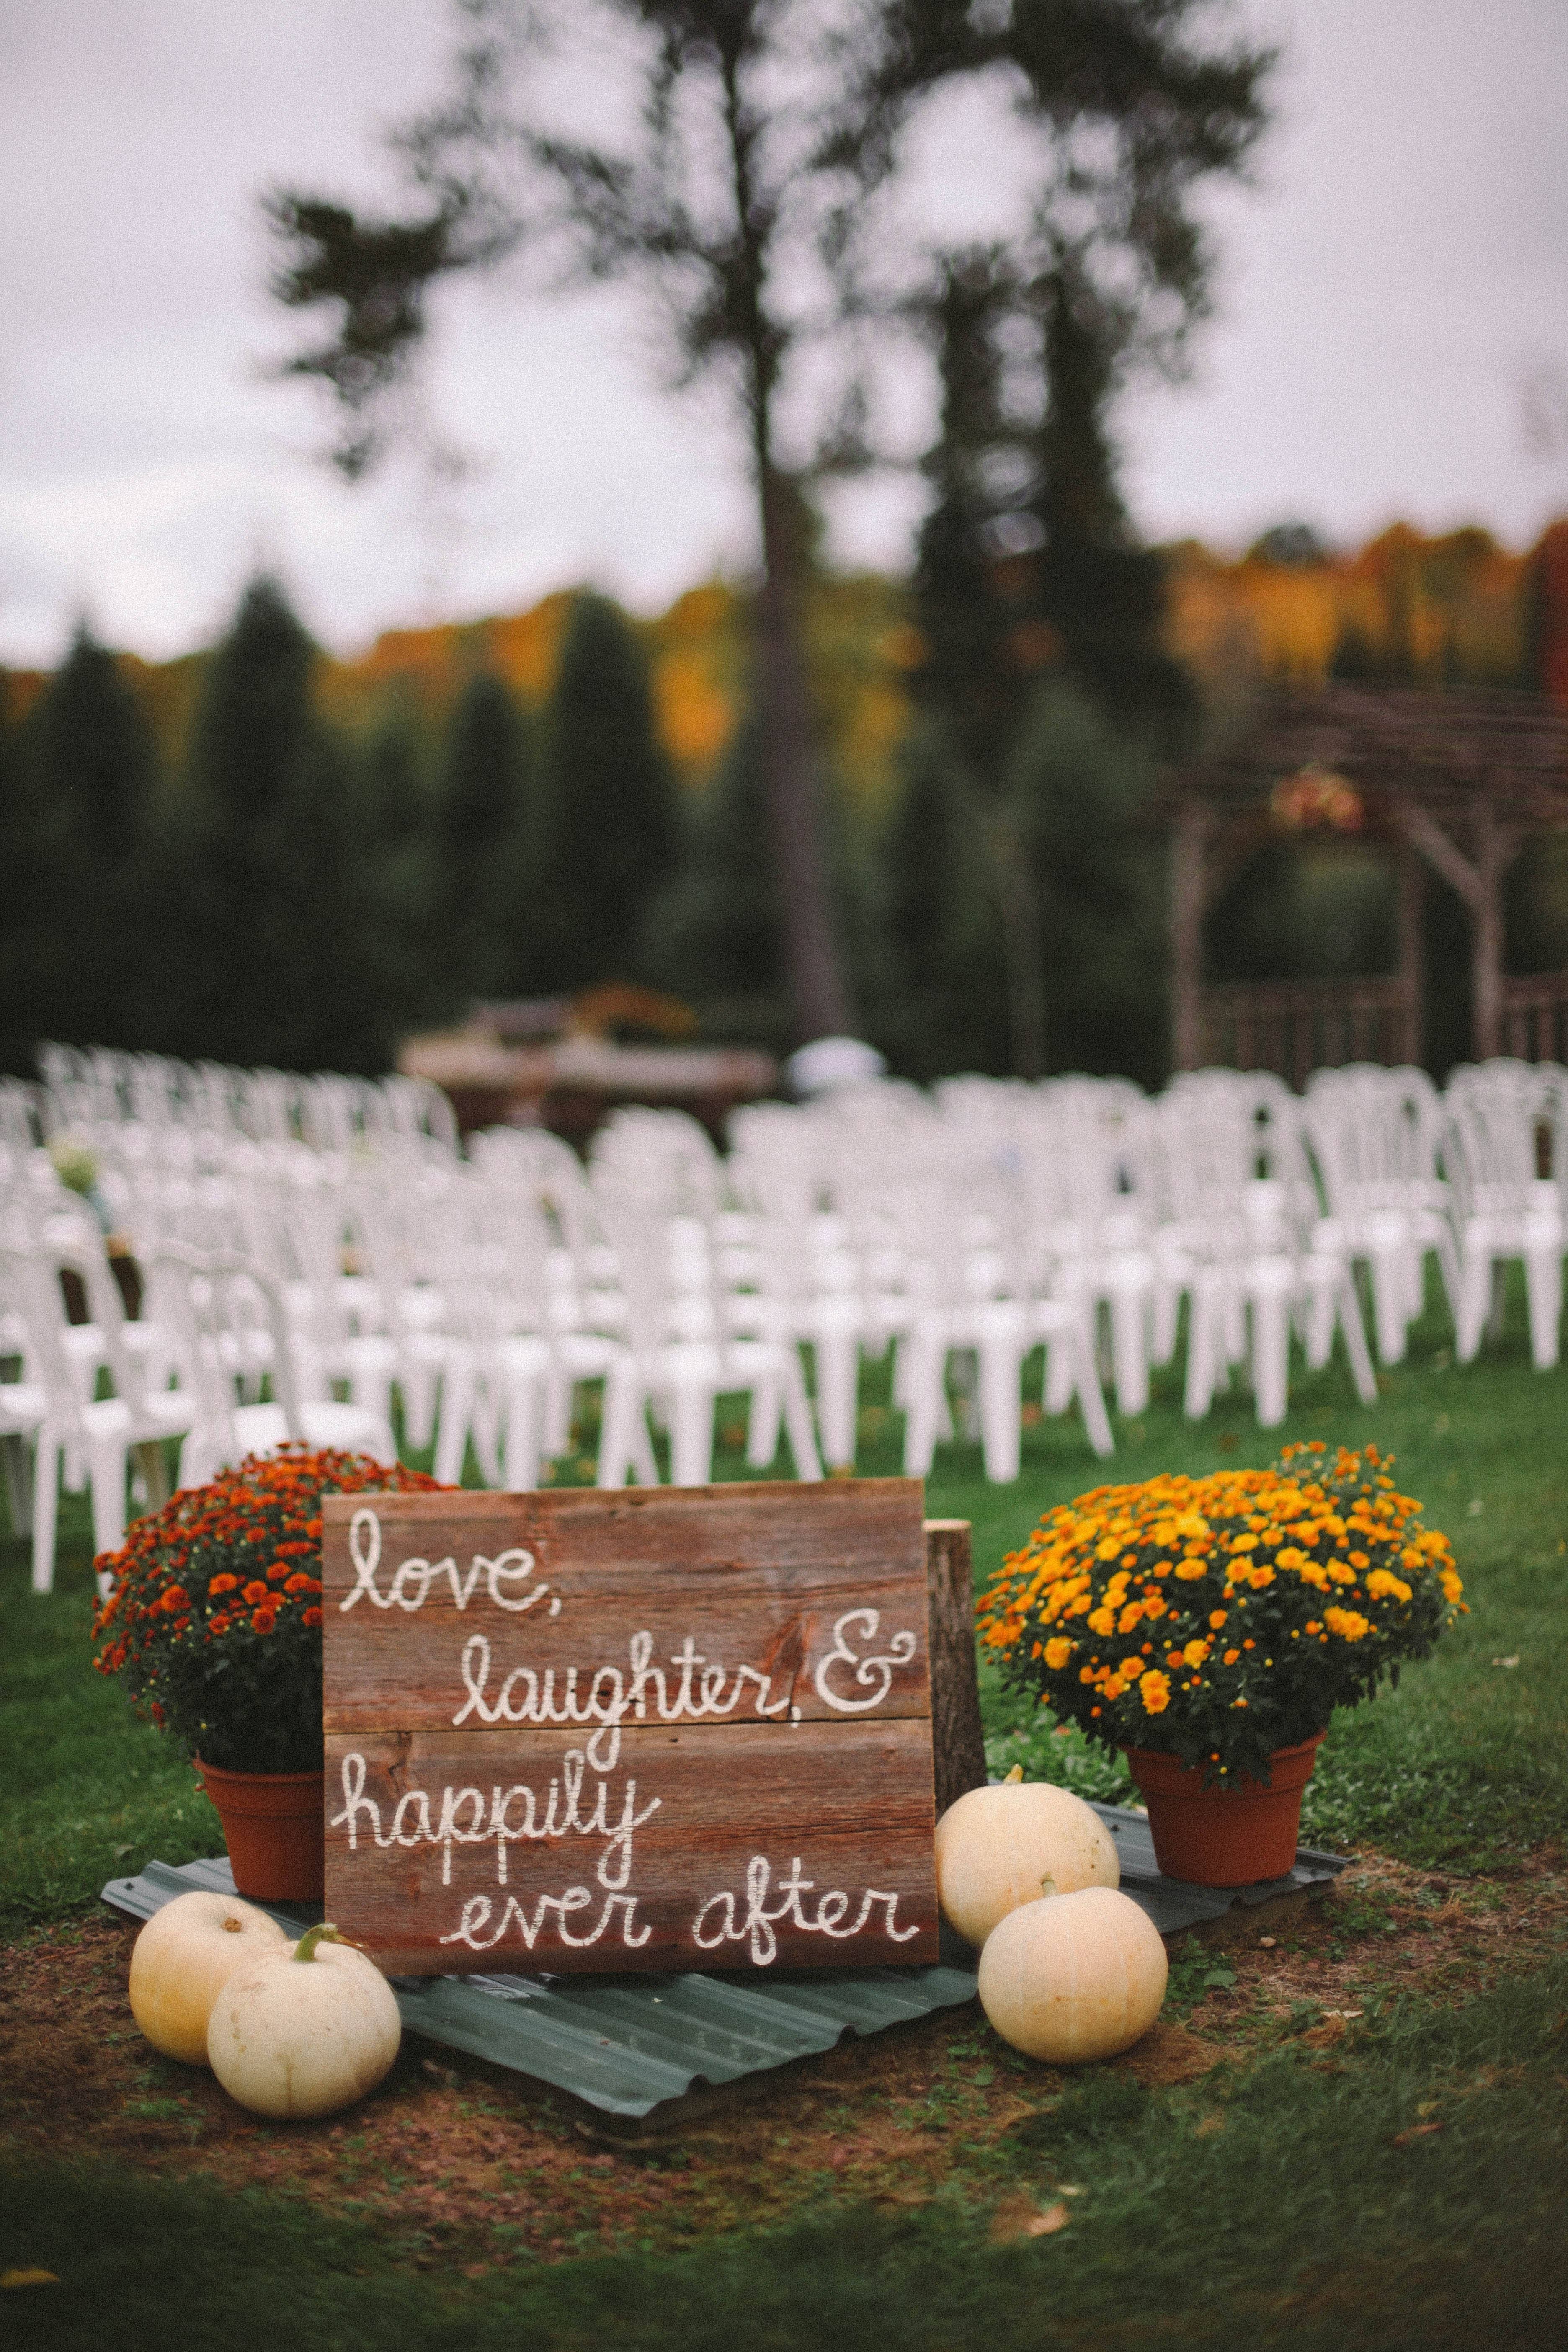 10 Awesome Outdoor Wedding Ideas For Fall ideas about fall wedding decorations and photos for best outdoor 2021